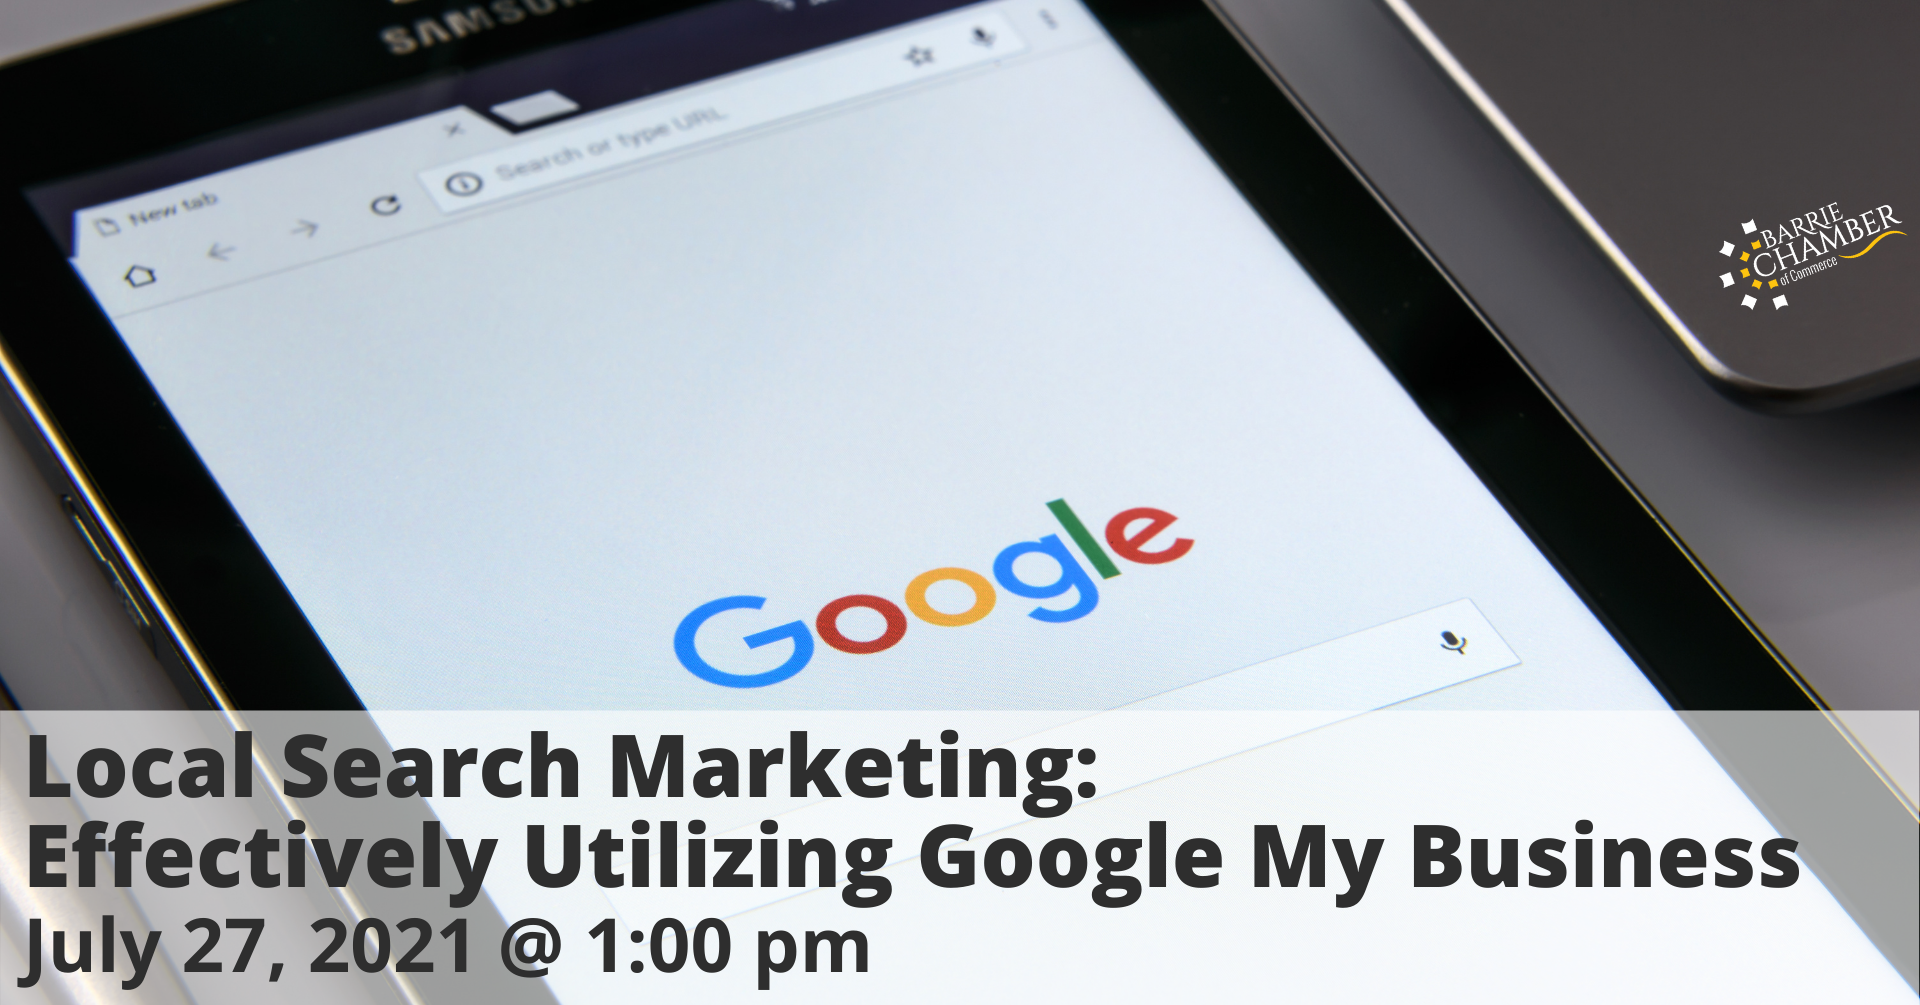 Local Search Marketing: Effectively Utilizing Google My Business - July 27 @ 1:00 pm